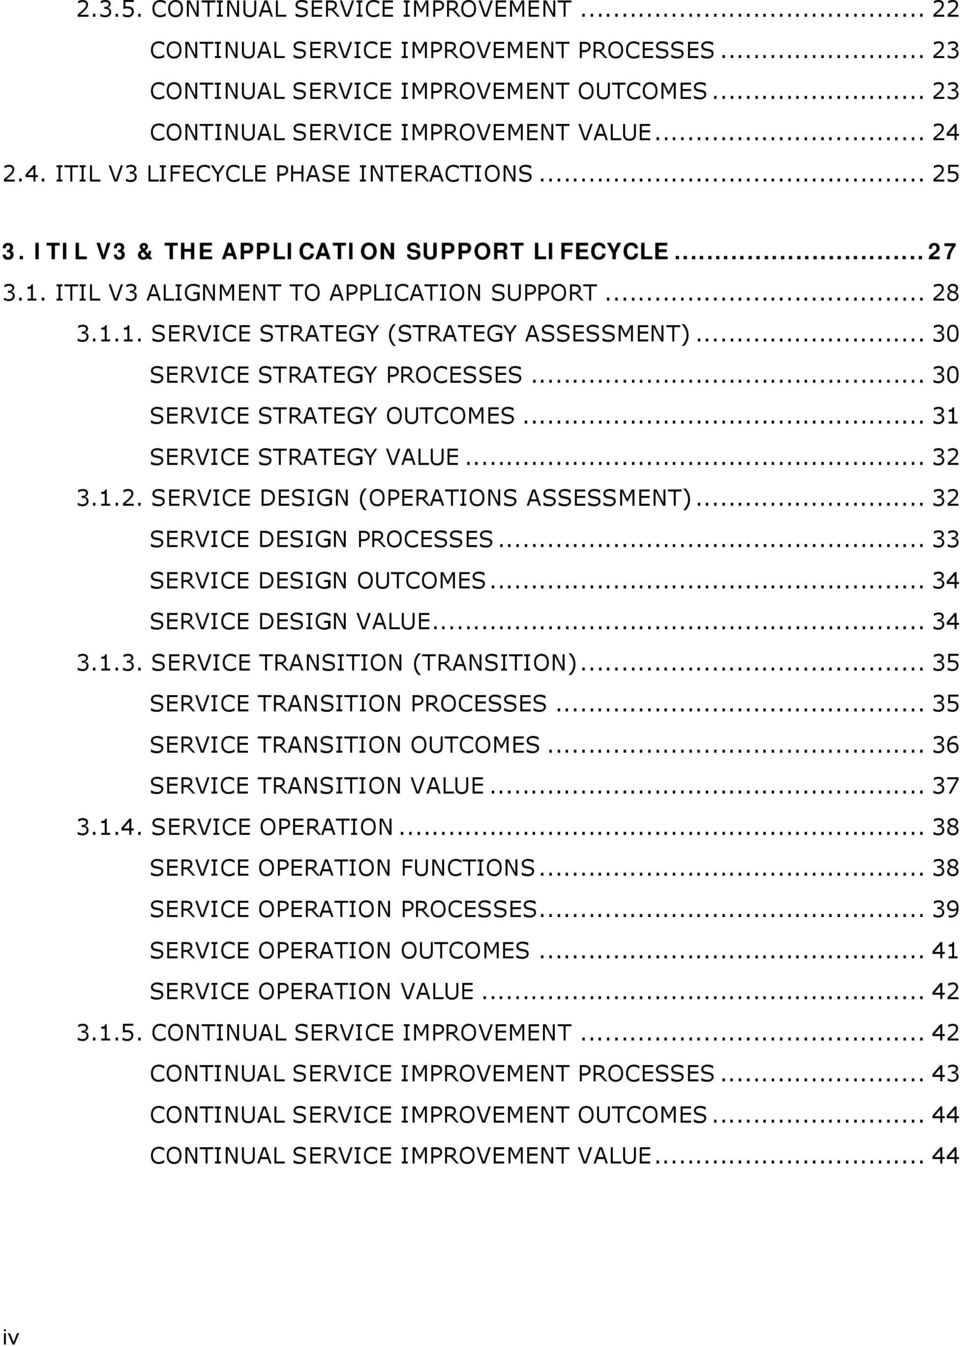 .. 30 SERVICE STRATEGY PROCESSES... 30 SERVICE STRATEGY OUTCOMES... 31 SERVICE STRATEGY VALUE... 32 3.1.2. SERVICE DESIGN (OPERATIONS ASSESSMENT)... 32 SERVICE DESIGN PROCESSES.